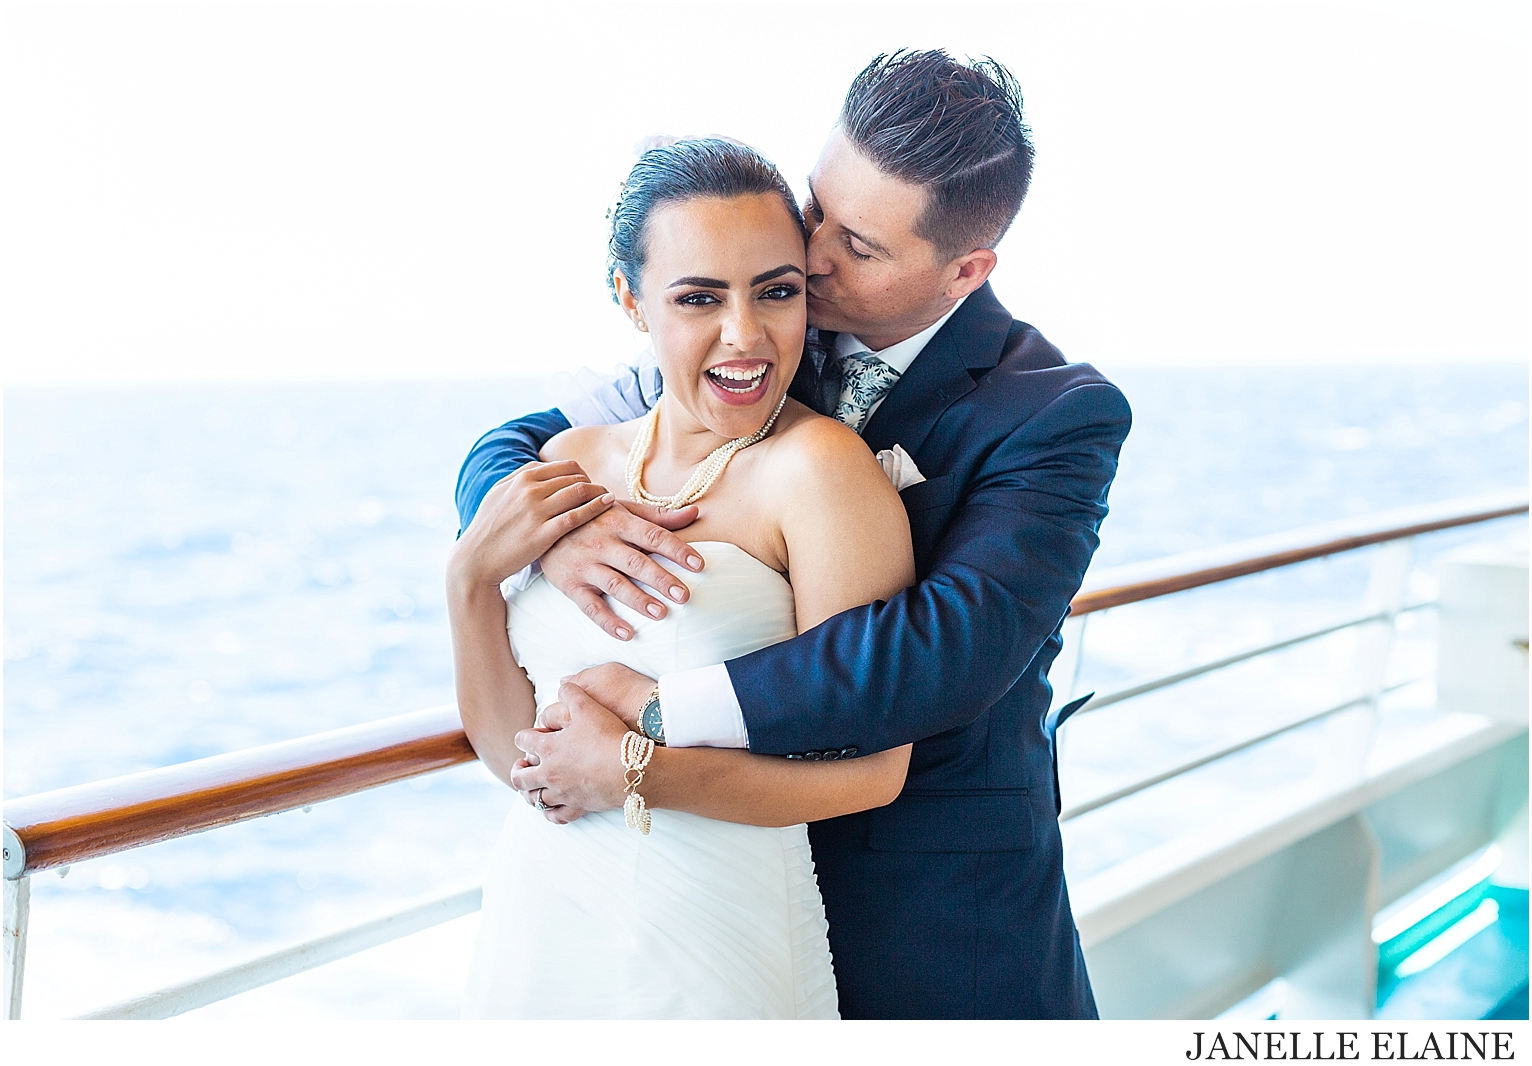 white wedding-royal caribbean-janelle elaine photography-227.jpg